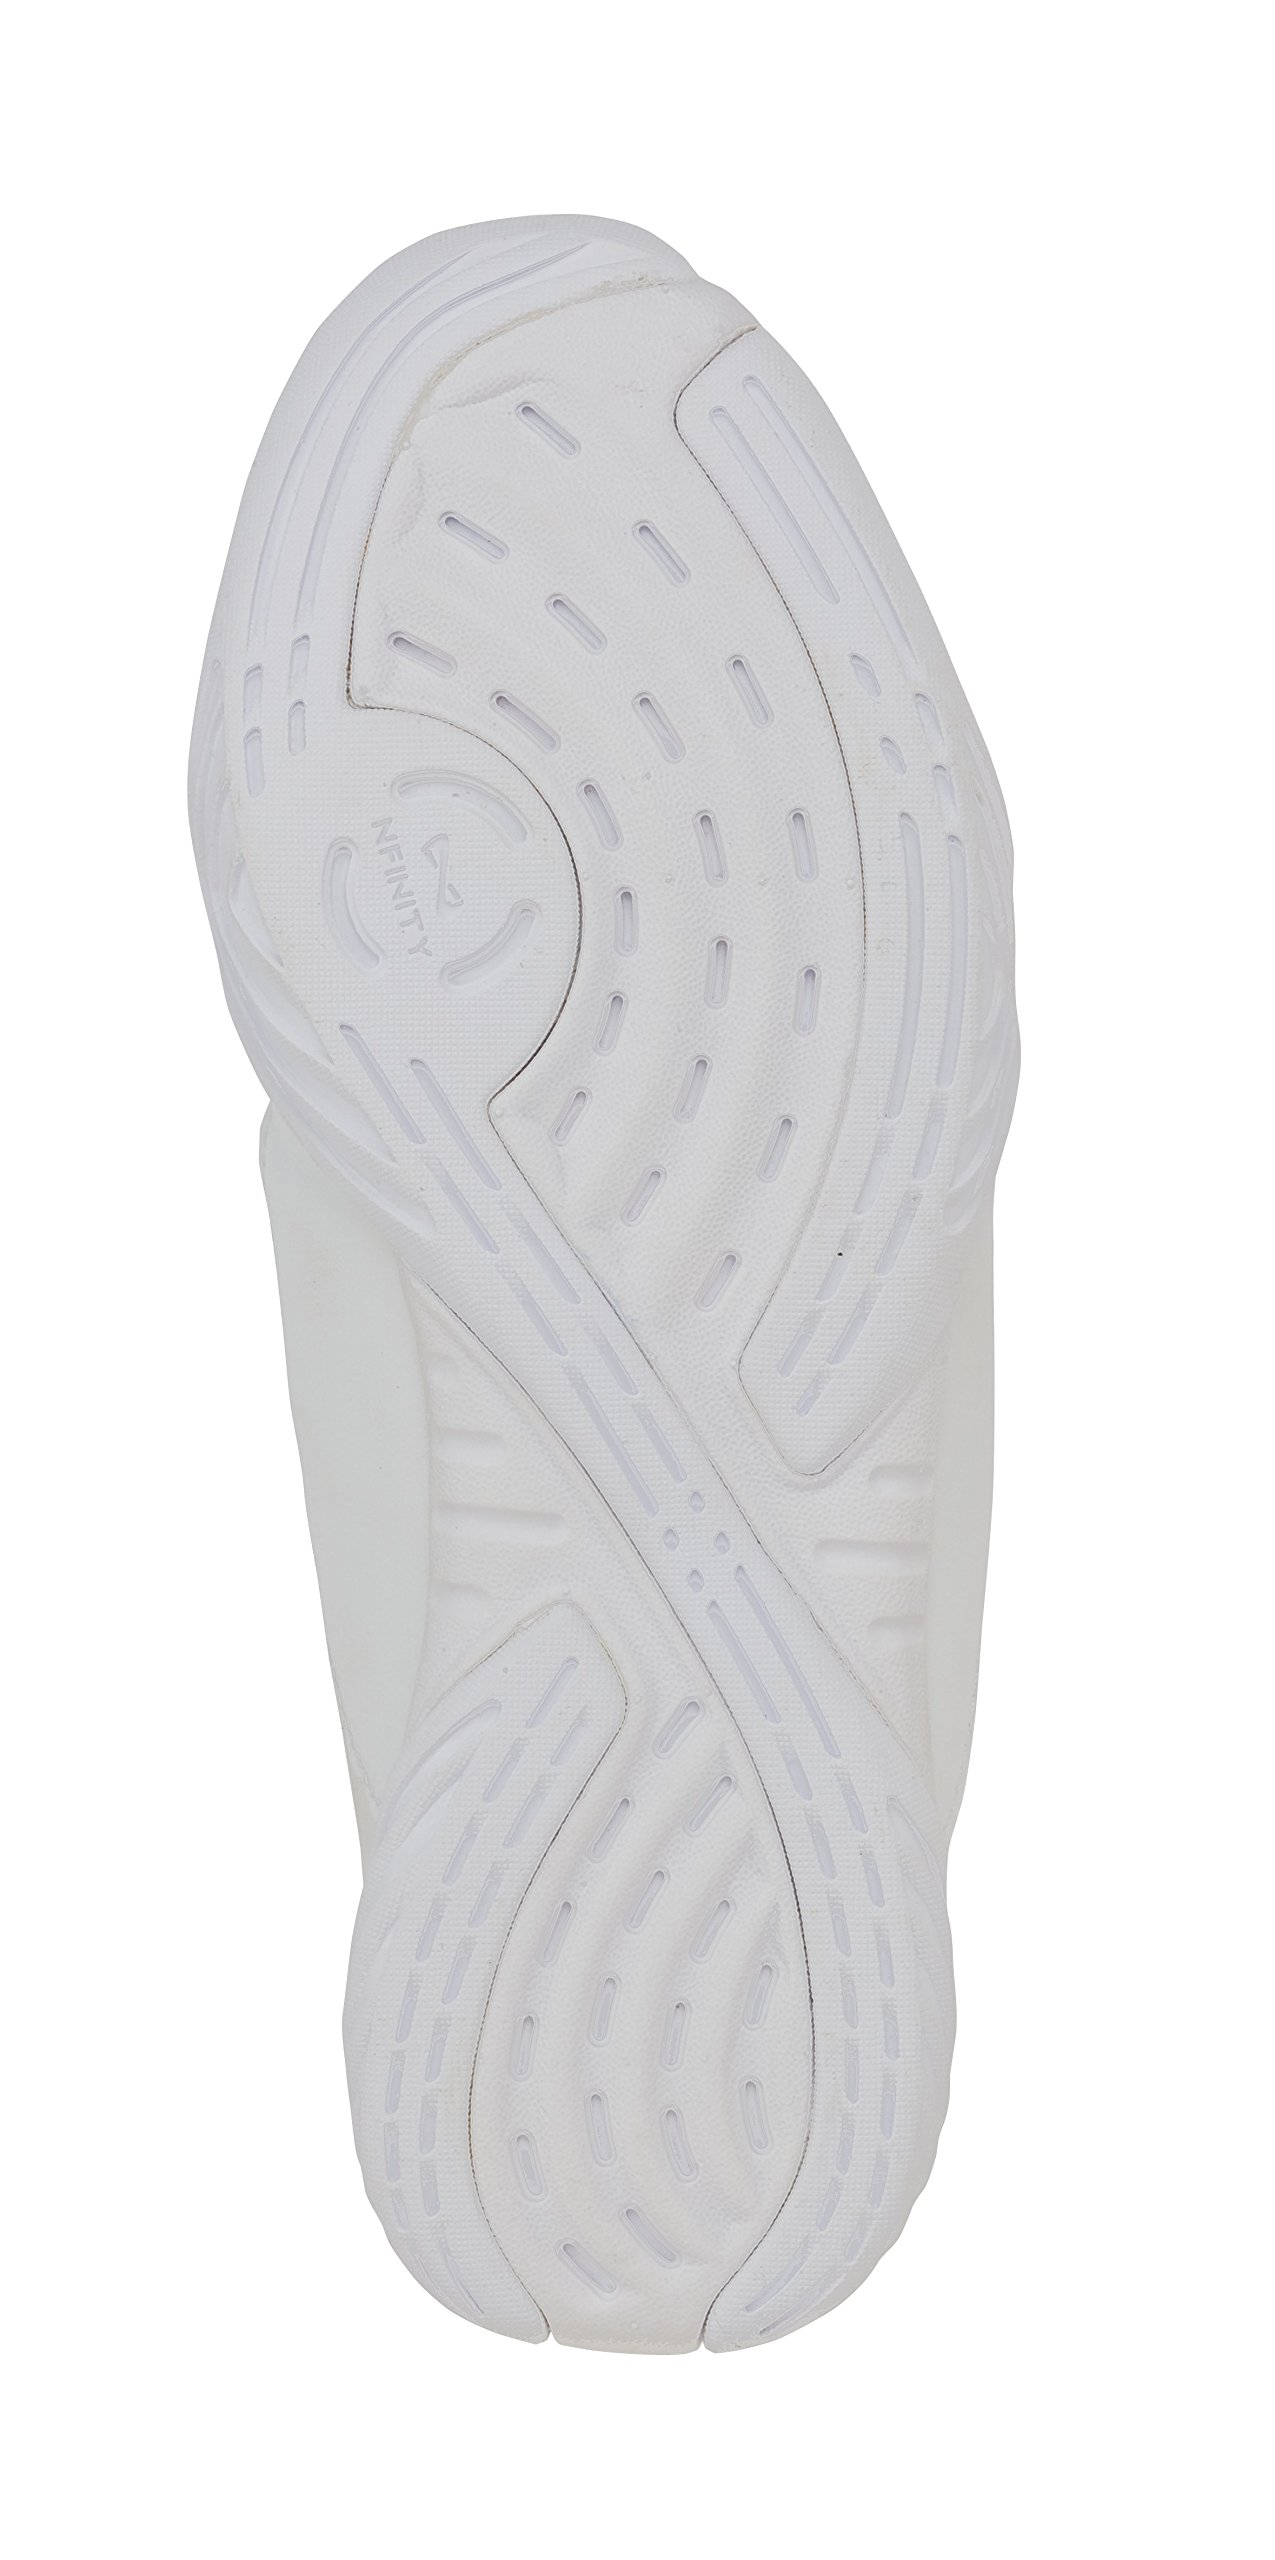 Nfinity Youth Evolution Cheer Shoes, White, Y13 by Nfinity (Image #2)